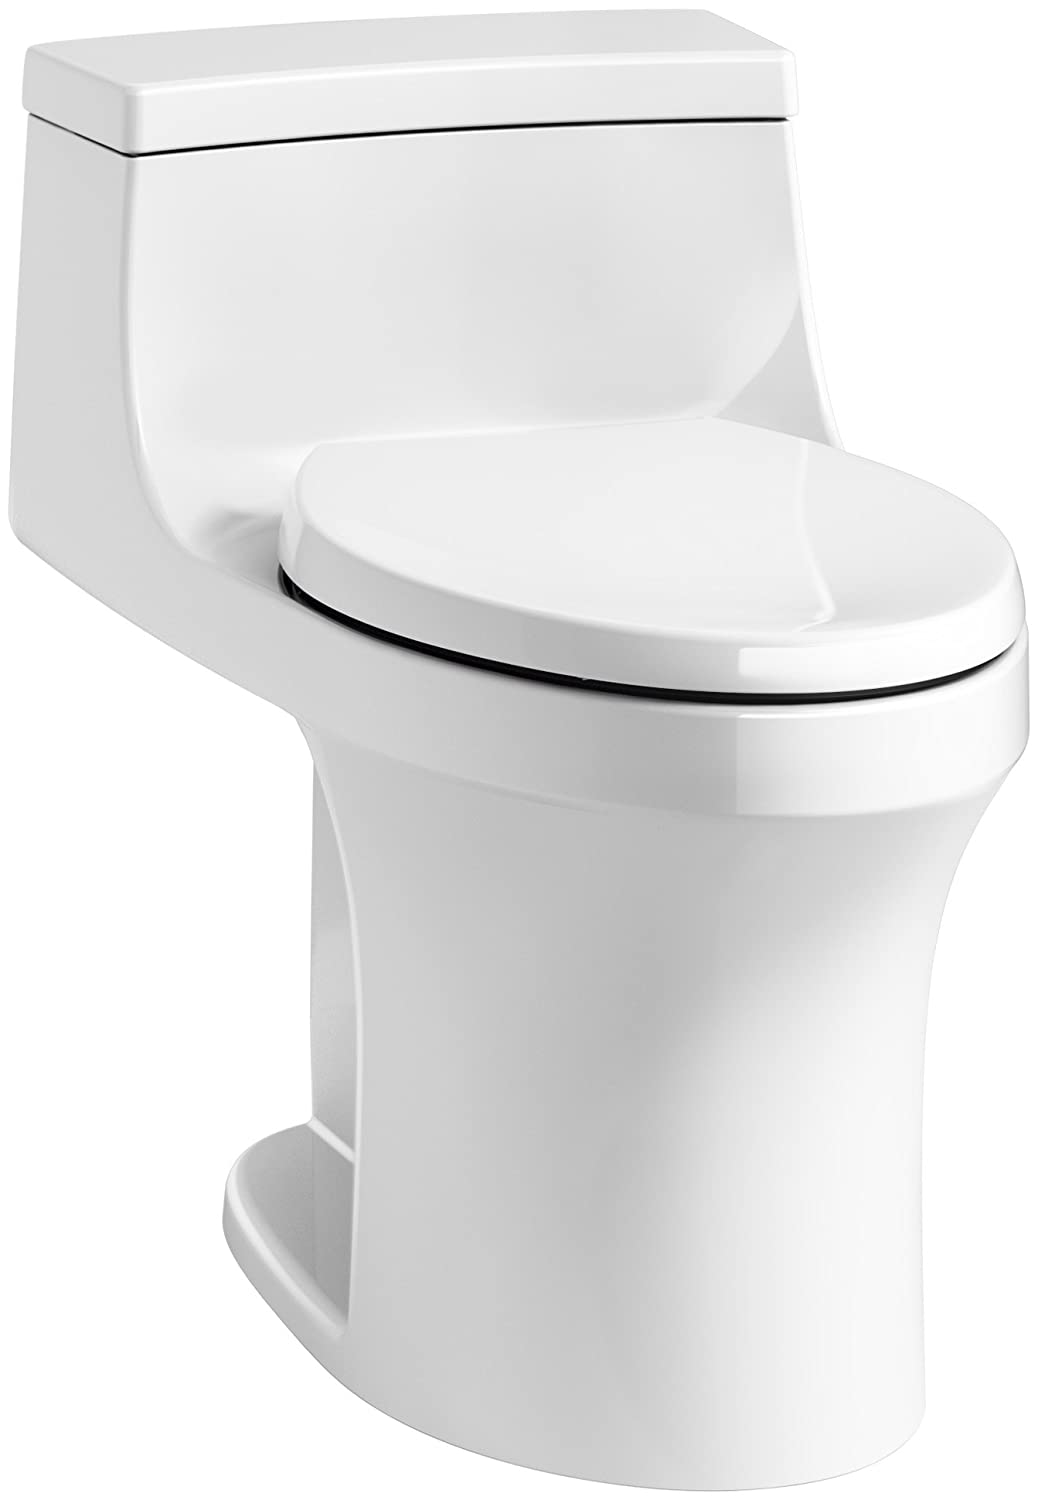 5 Awesome Kohler San Souci Toilet Models Must Read Review